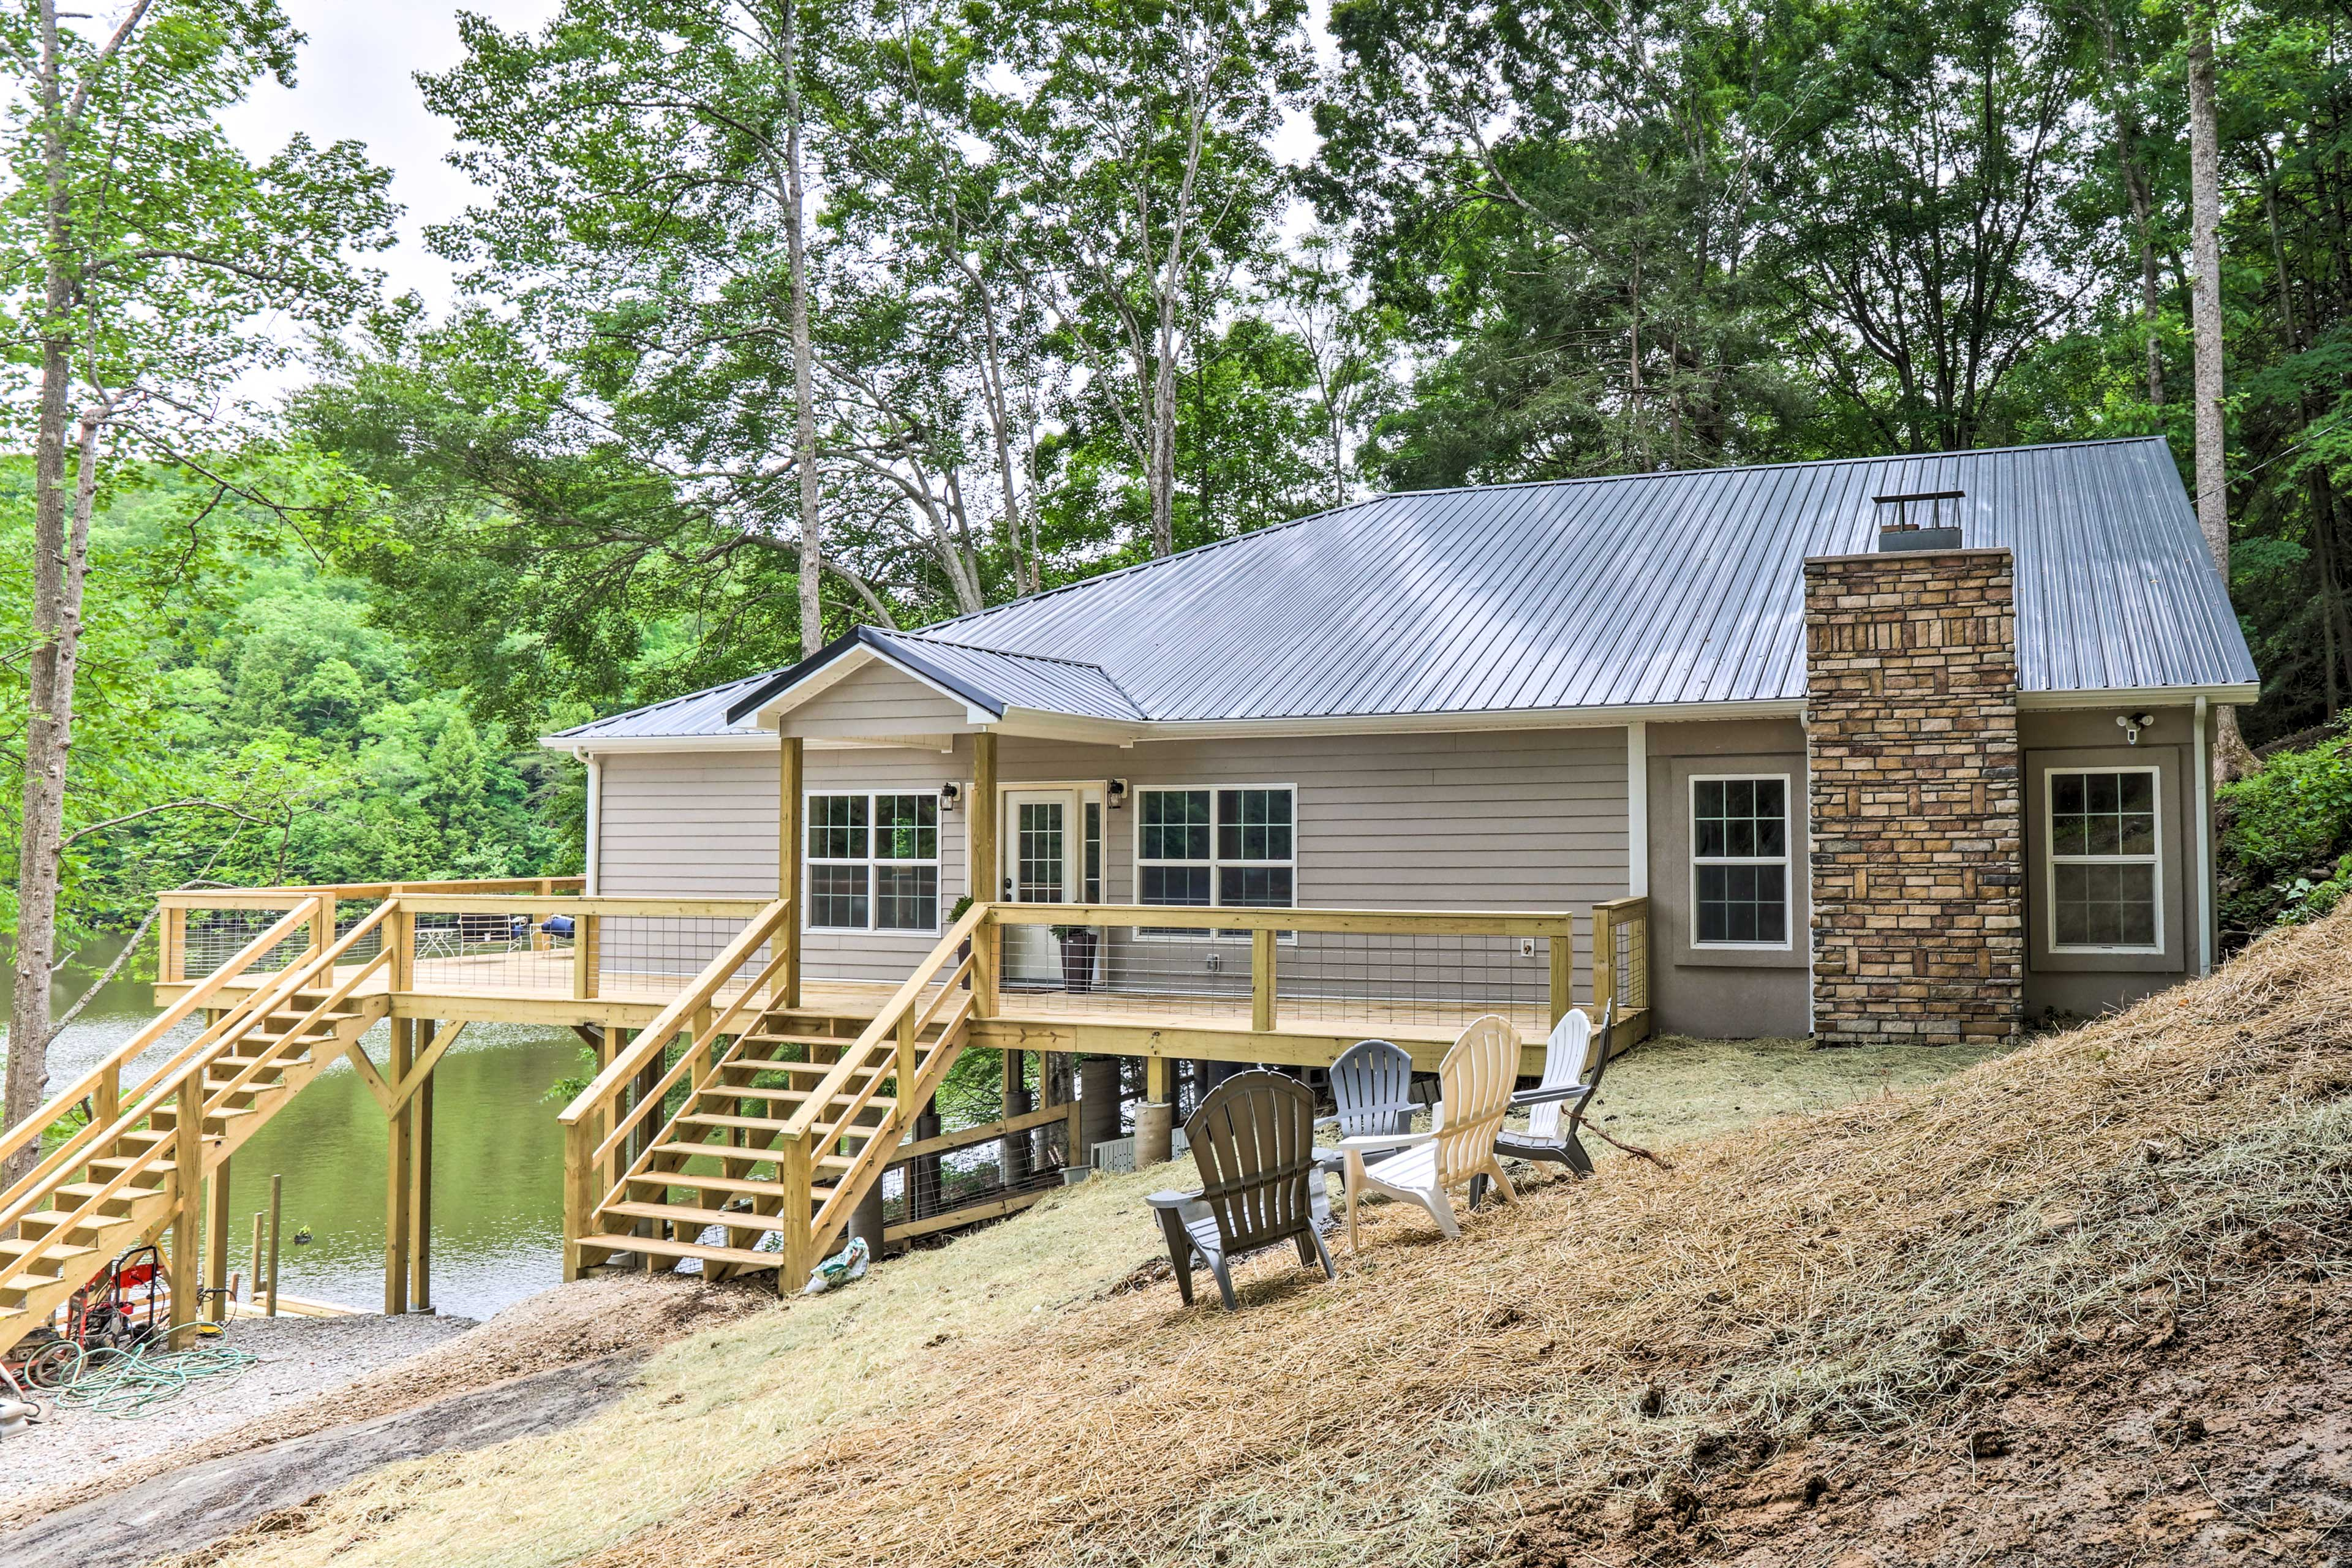 Home Exterior | Stairs Required for Access | Direct Lake Access